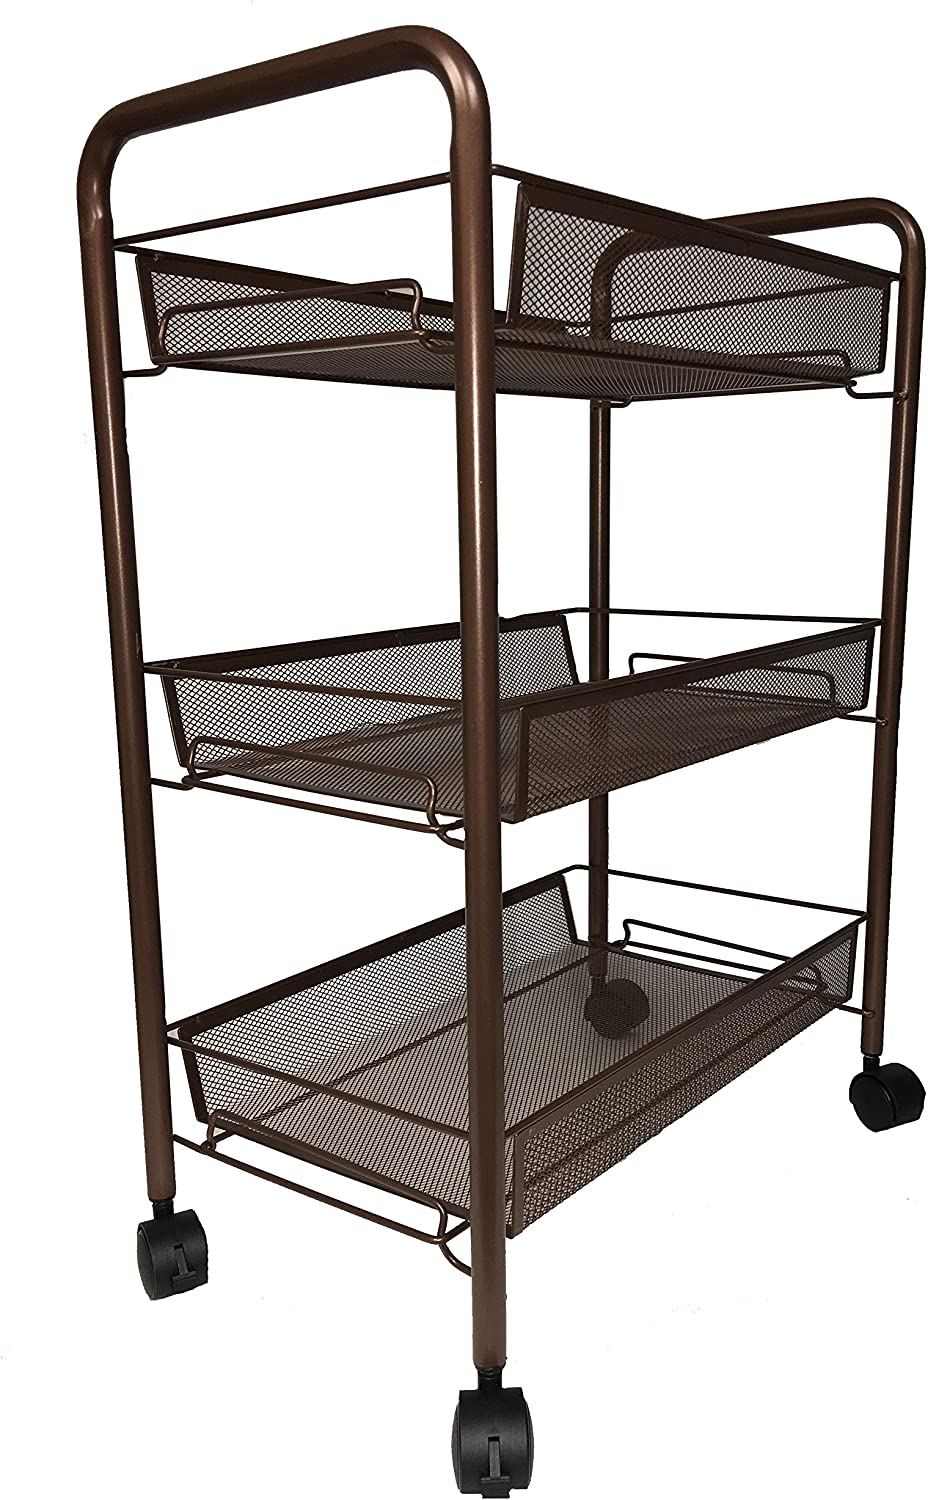 BonBon 3-Tier Wire Mesh Rolling Cart for Serving Utility Organization Kitchen Cart with Portable Metal Handle Easy Moving Flexible Wheels – Bronze